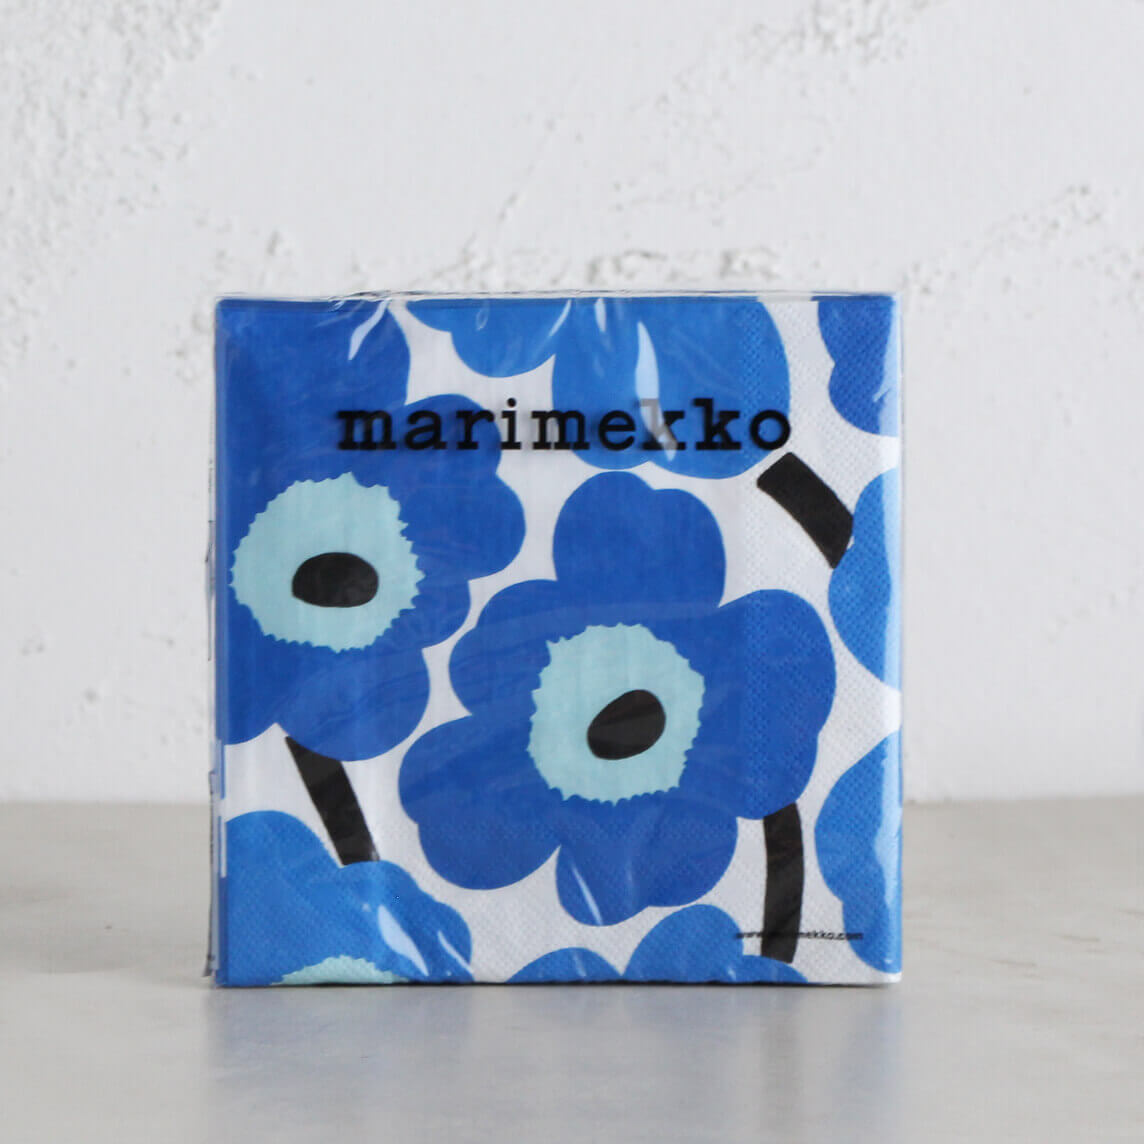 MARIMEKKO  |  UNIKKO PAPER NAPKIN  | DARK BLUE + LIGHT BLUE  |  PAPER SERVIETTES